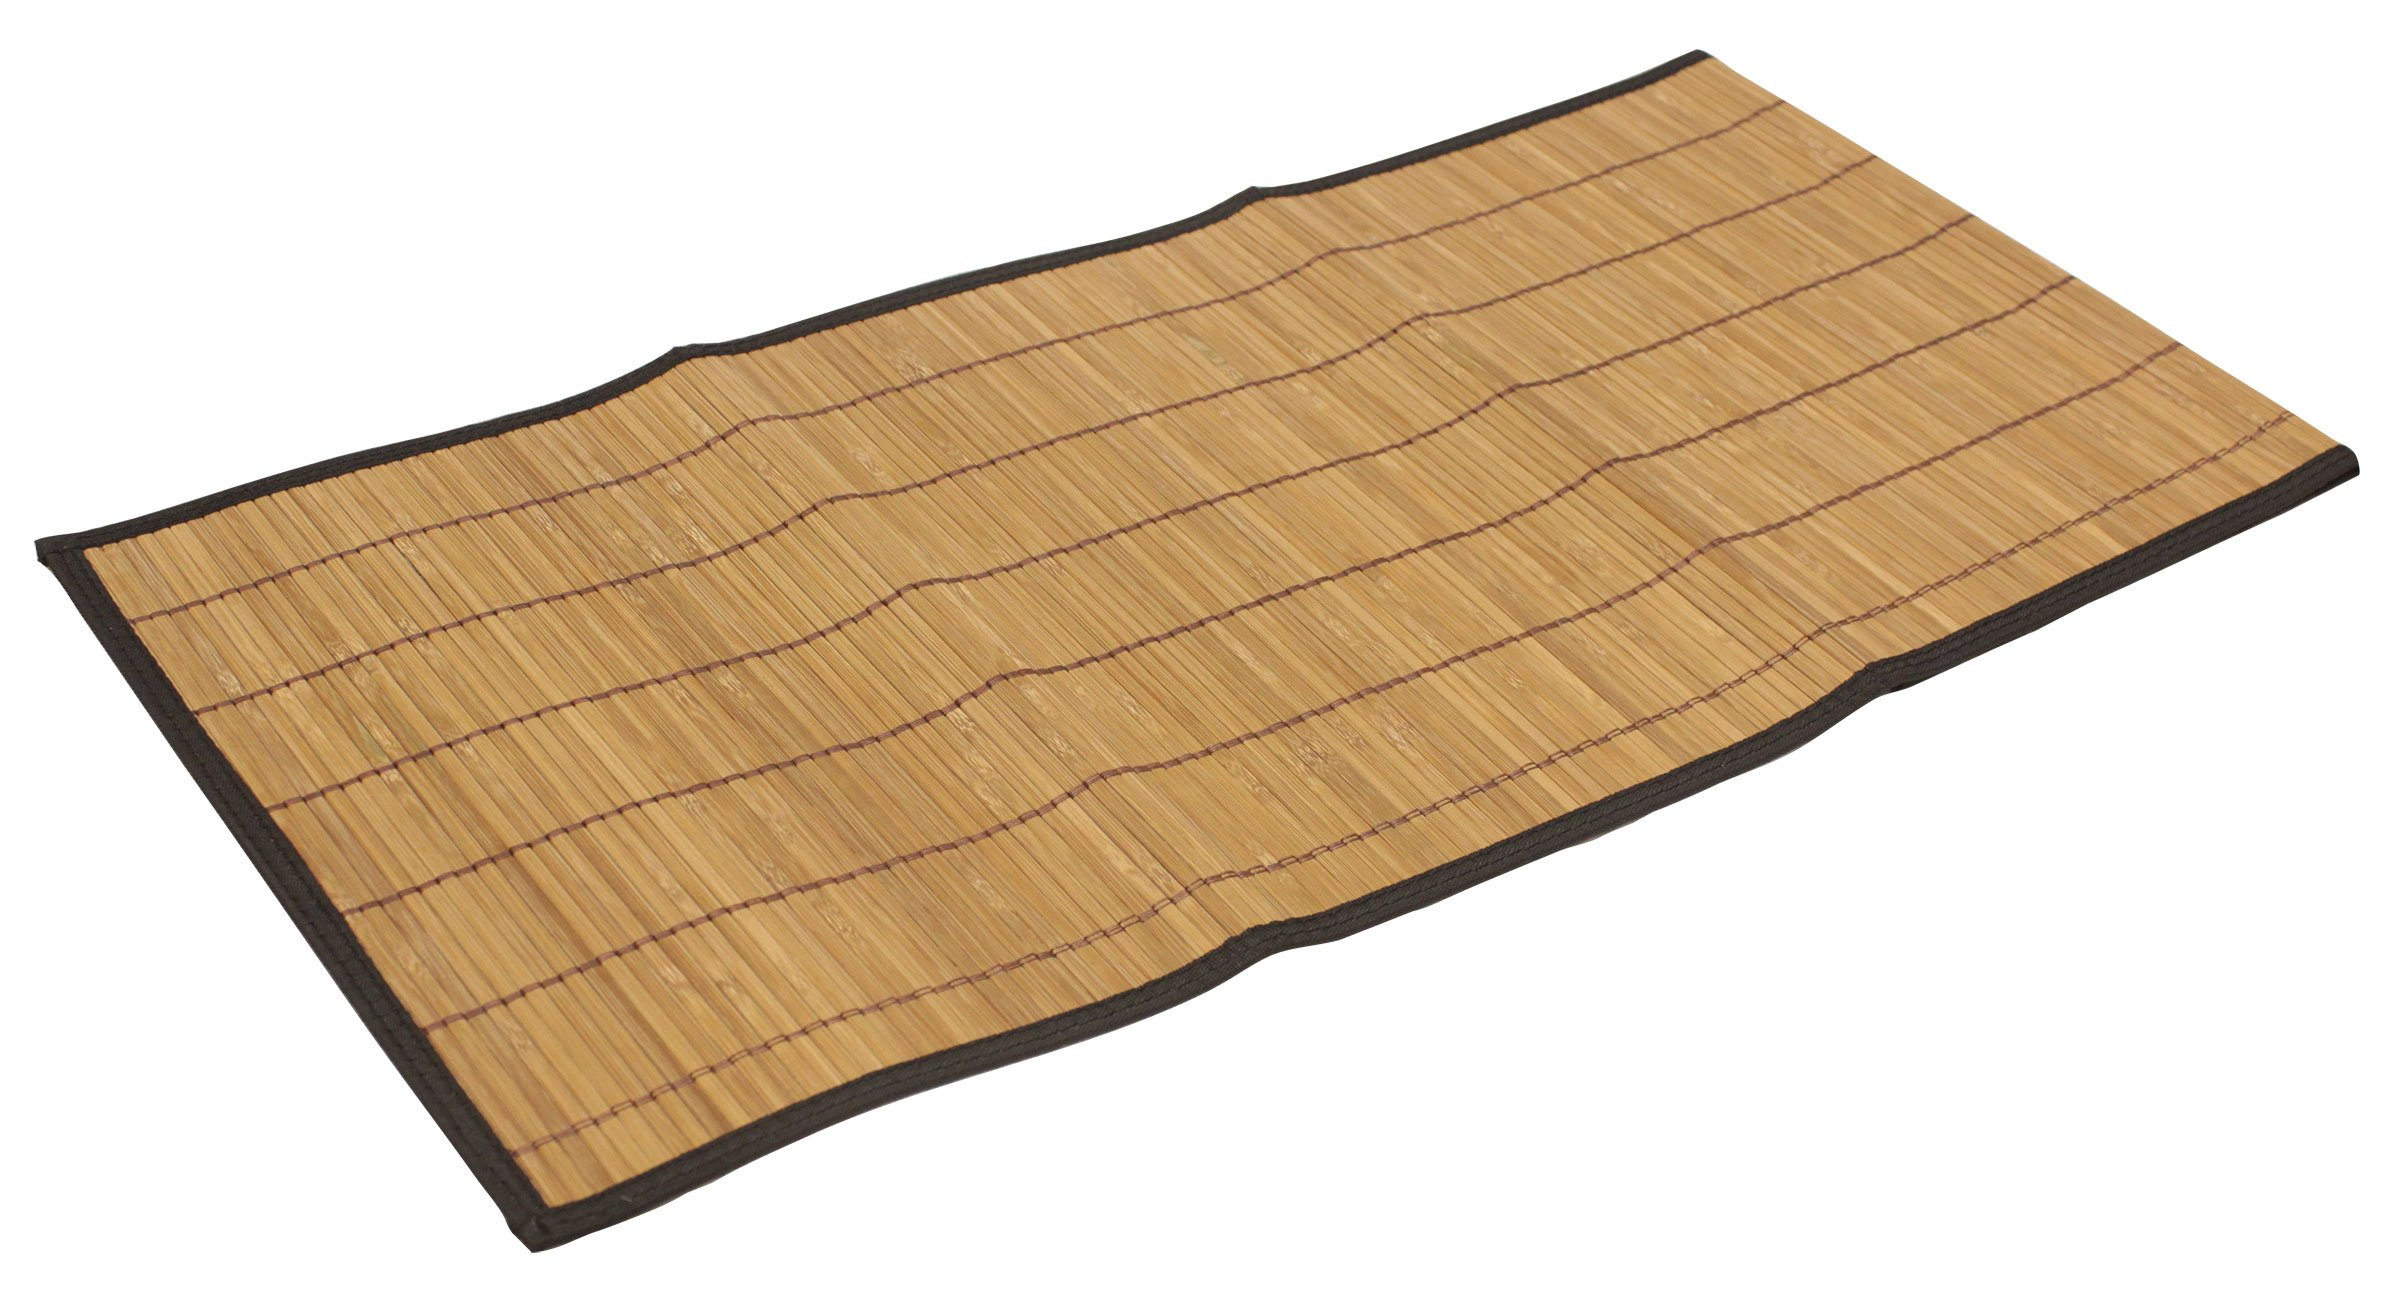 "Seta Direct, Brown Bamboo Slat Table Runner With Black Color Border (13""x48"") - Natural brown bamboo flat slats table runner with black color fabric border. Add a natural décor to your dining table while protecting it. 13 x 48 inches (Each bamboo slat is approximately 4mm wide and 2mm thick) Cheesecloth fabric backing to protect table surface and hold bamboo slats together - placemats, kitchen-dining-room-table-linens, kitchen-dining-room - 81GjJhA0TqL -"